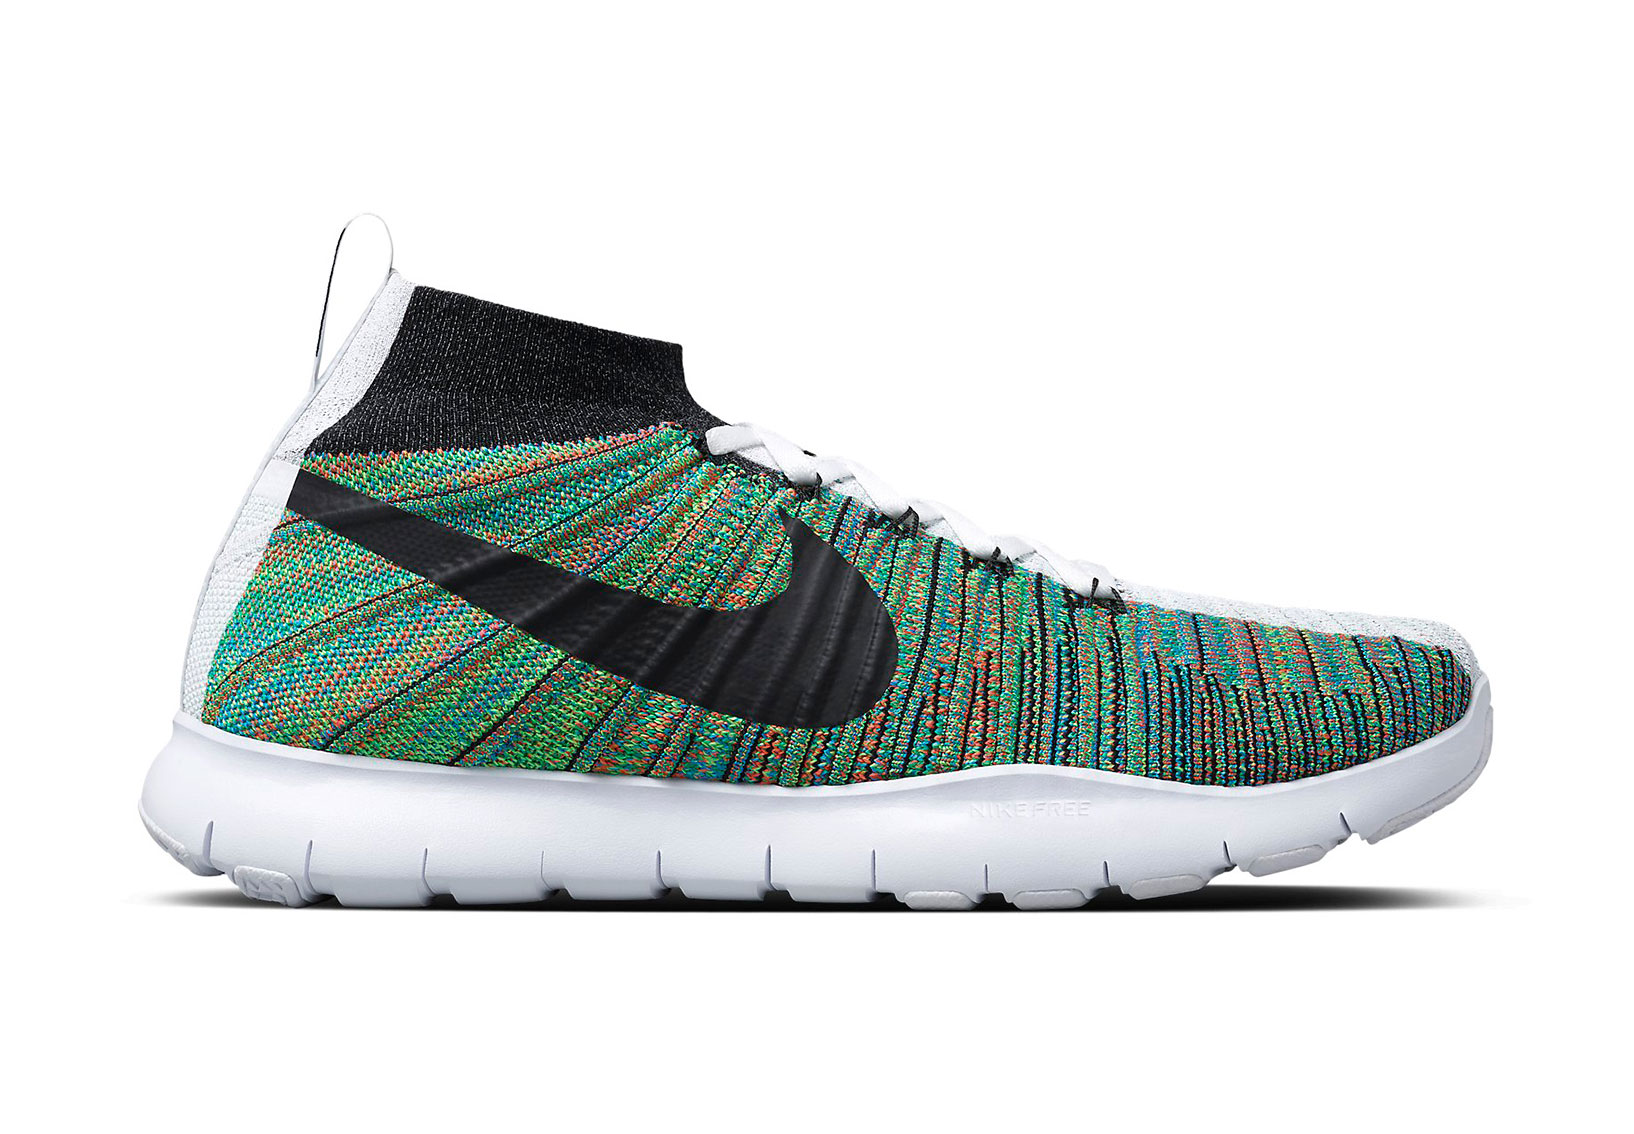 Riccardo Tisci Releases Two Multicolor Flyknit NikeLab Sneakers